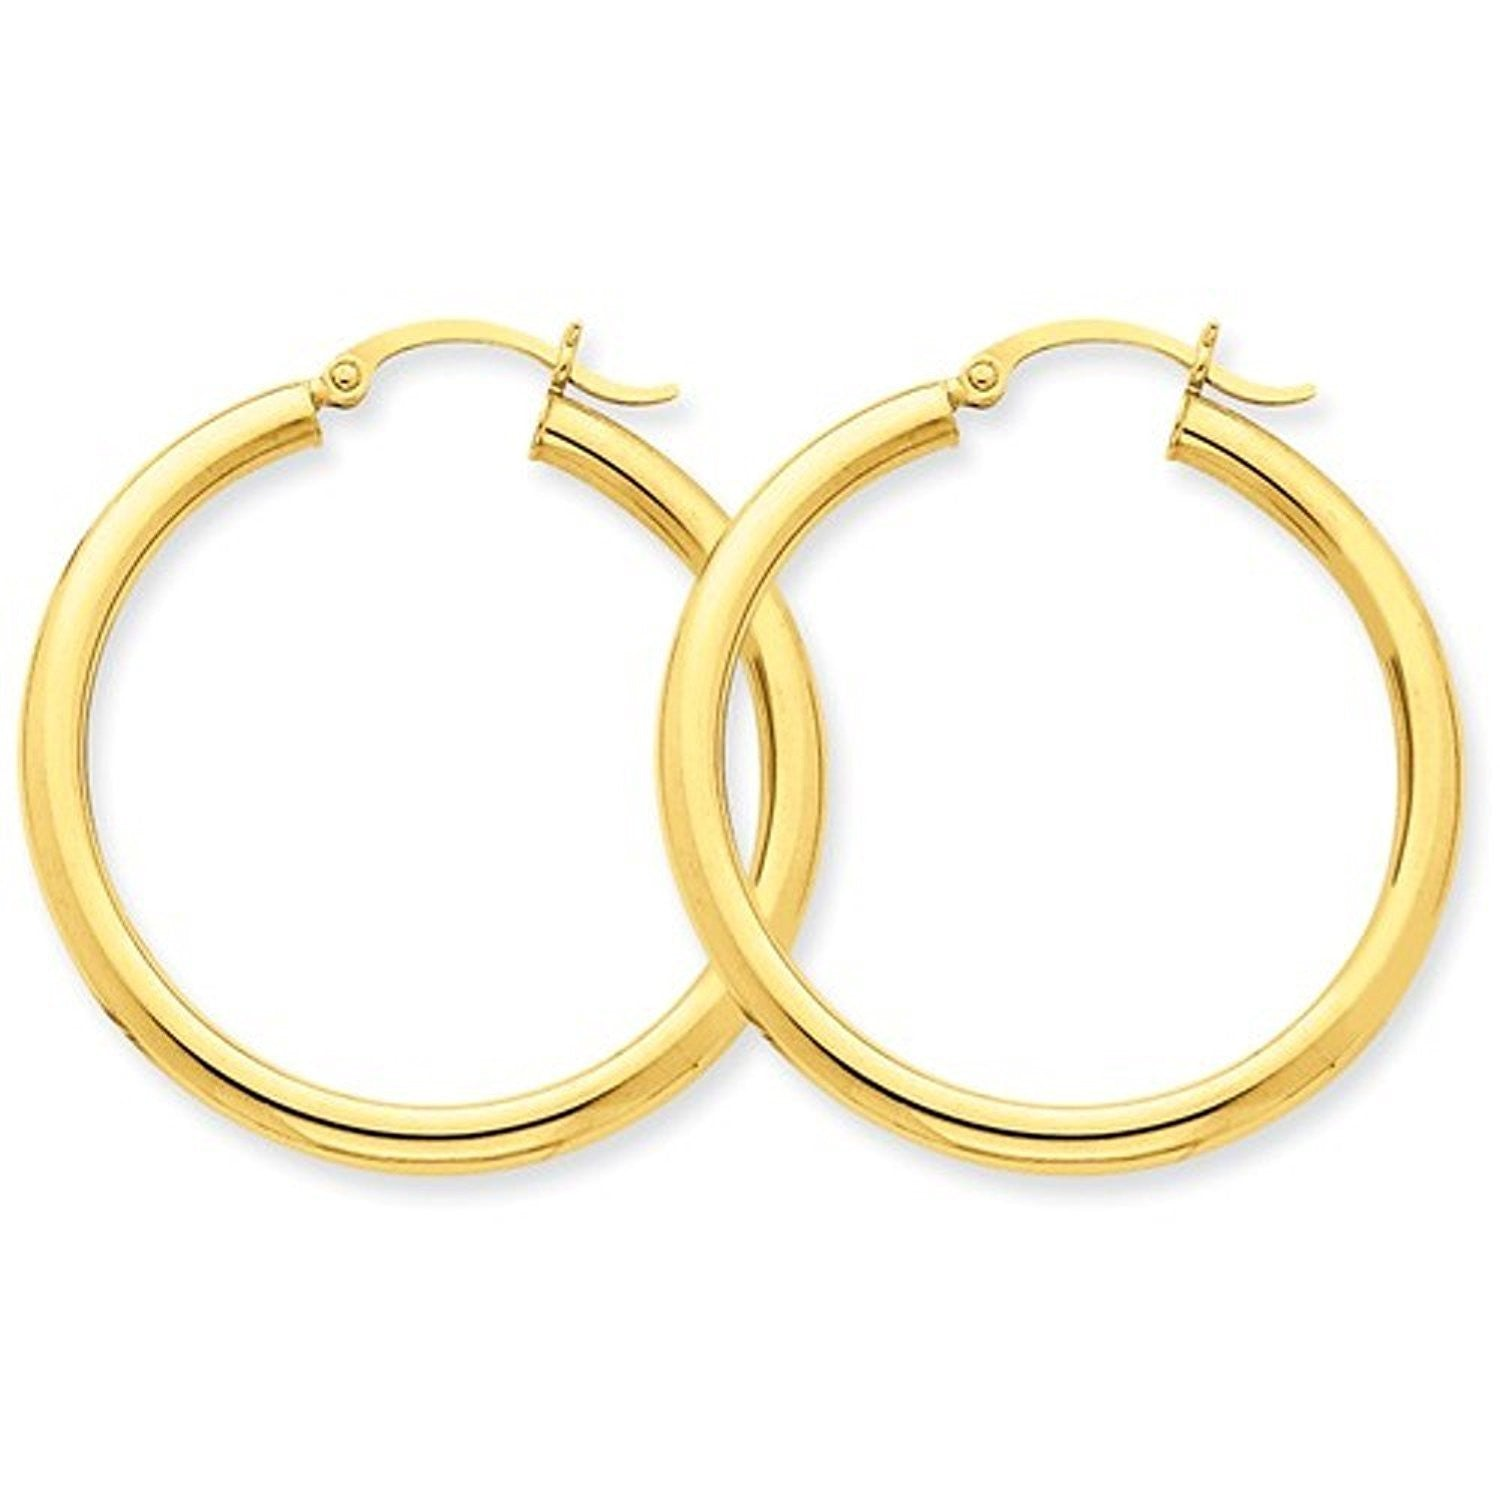 14K Yellow Gold 35mm x 3mm Classic Round Hoop Earrings